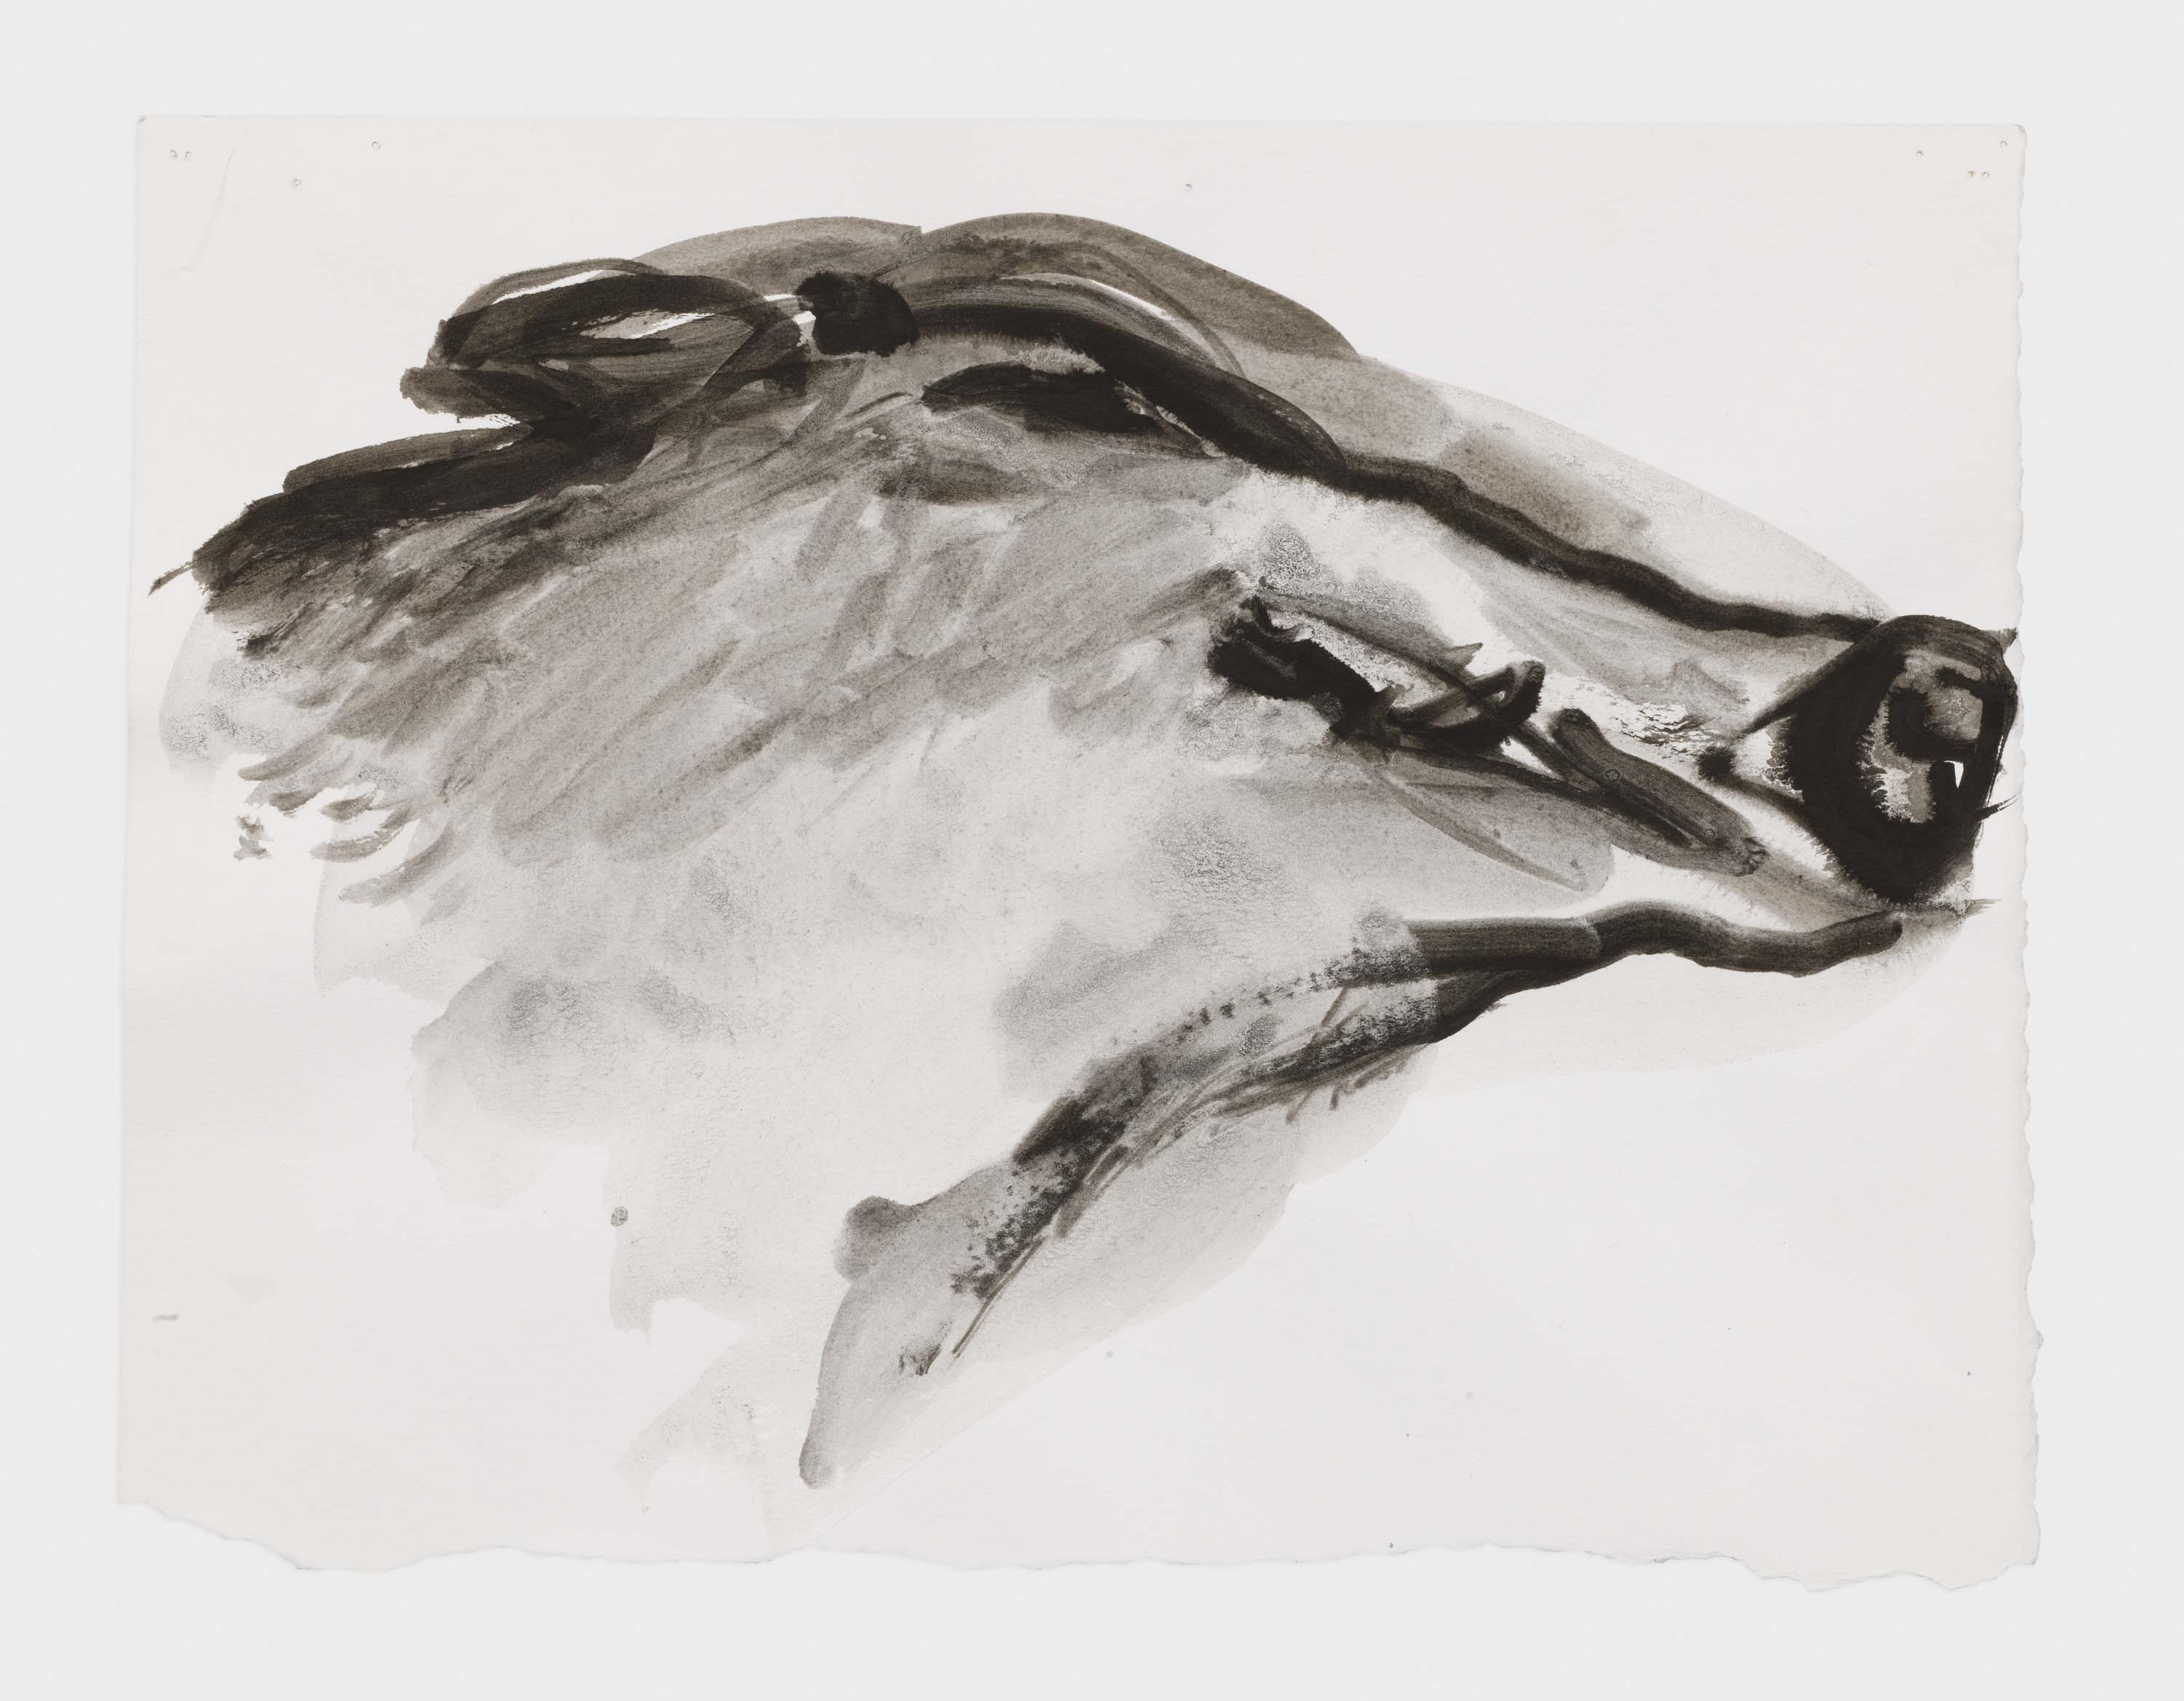 "Marlene Dumas, ""The boar smiles"", 2015-2016, Ink wash and metallic acrylic on paper 9 3/4 x 12 3/4 inches 24.8 x 32.4 cm. Exposition ""Myths & Mortals"", Galerie David Zwirner, New-York"